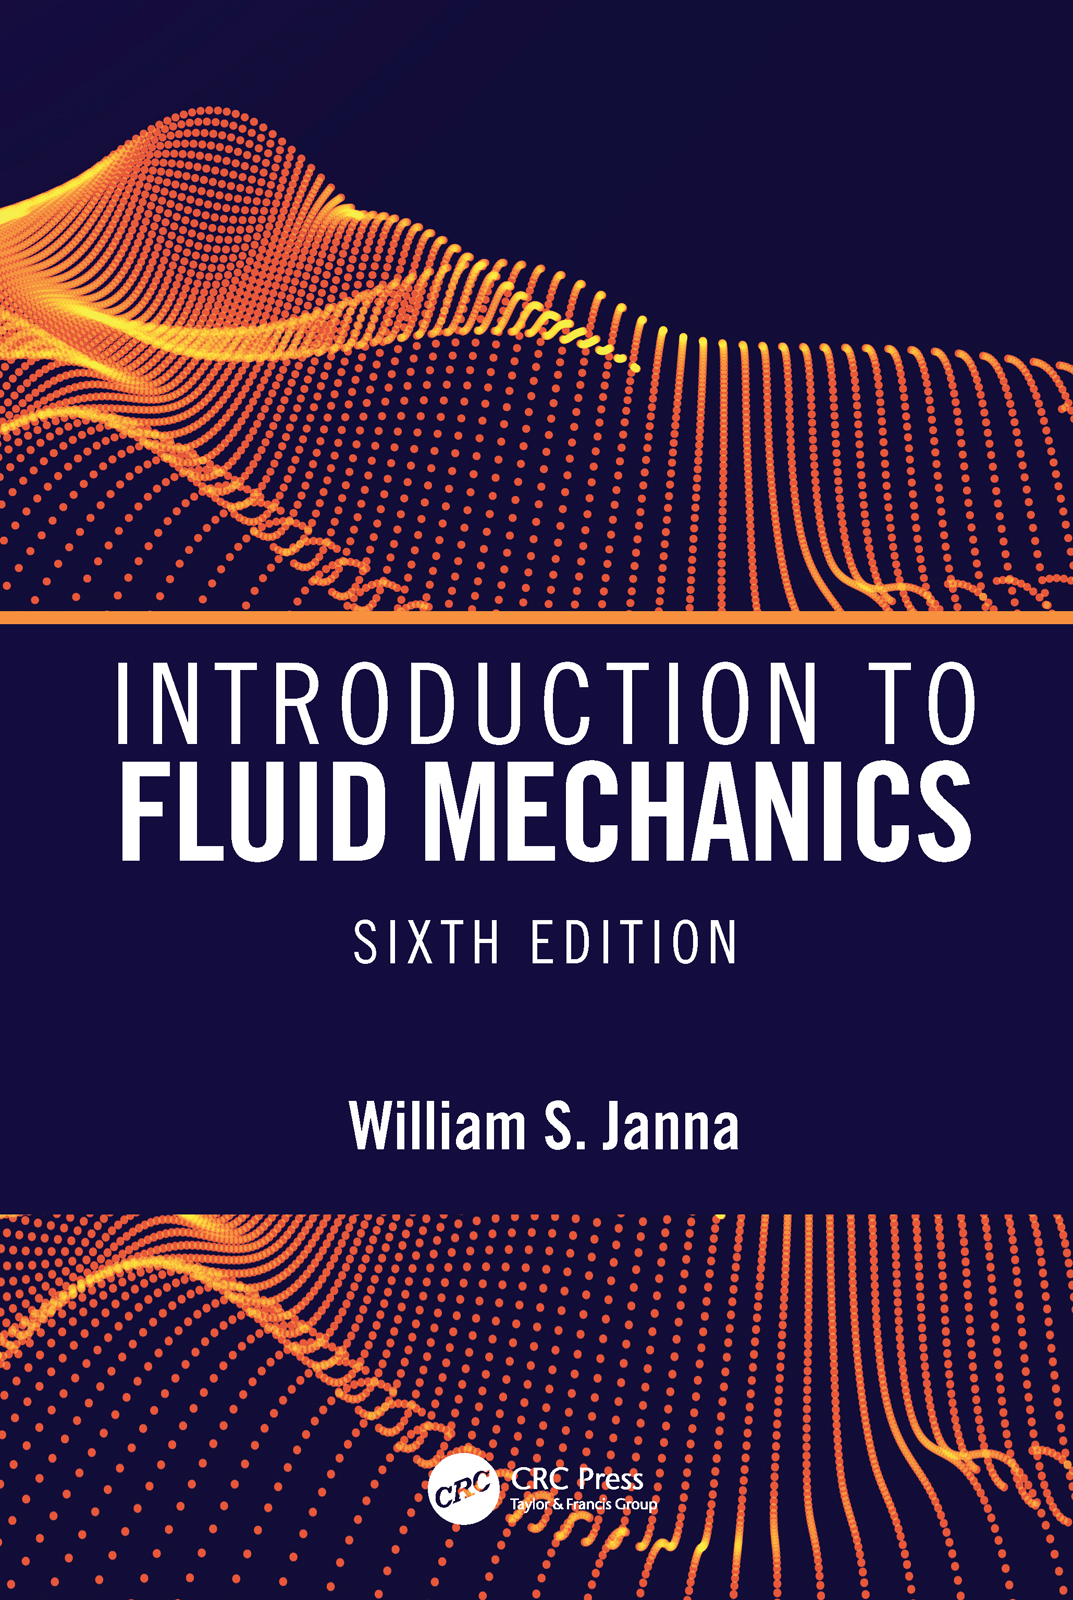 Introduction to Fluid Mechanics, Sixth Edition: 6th Edition (Hardback) book cover